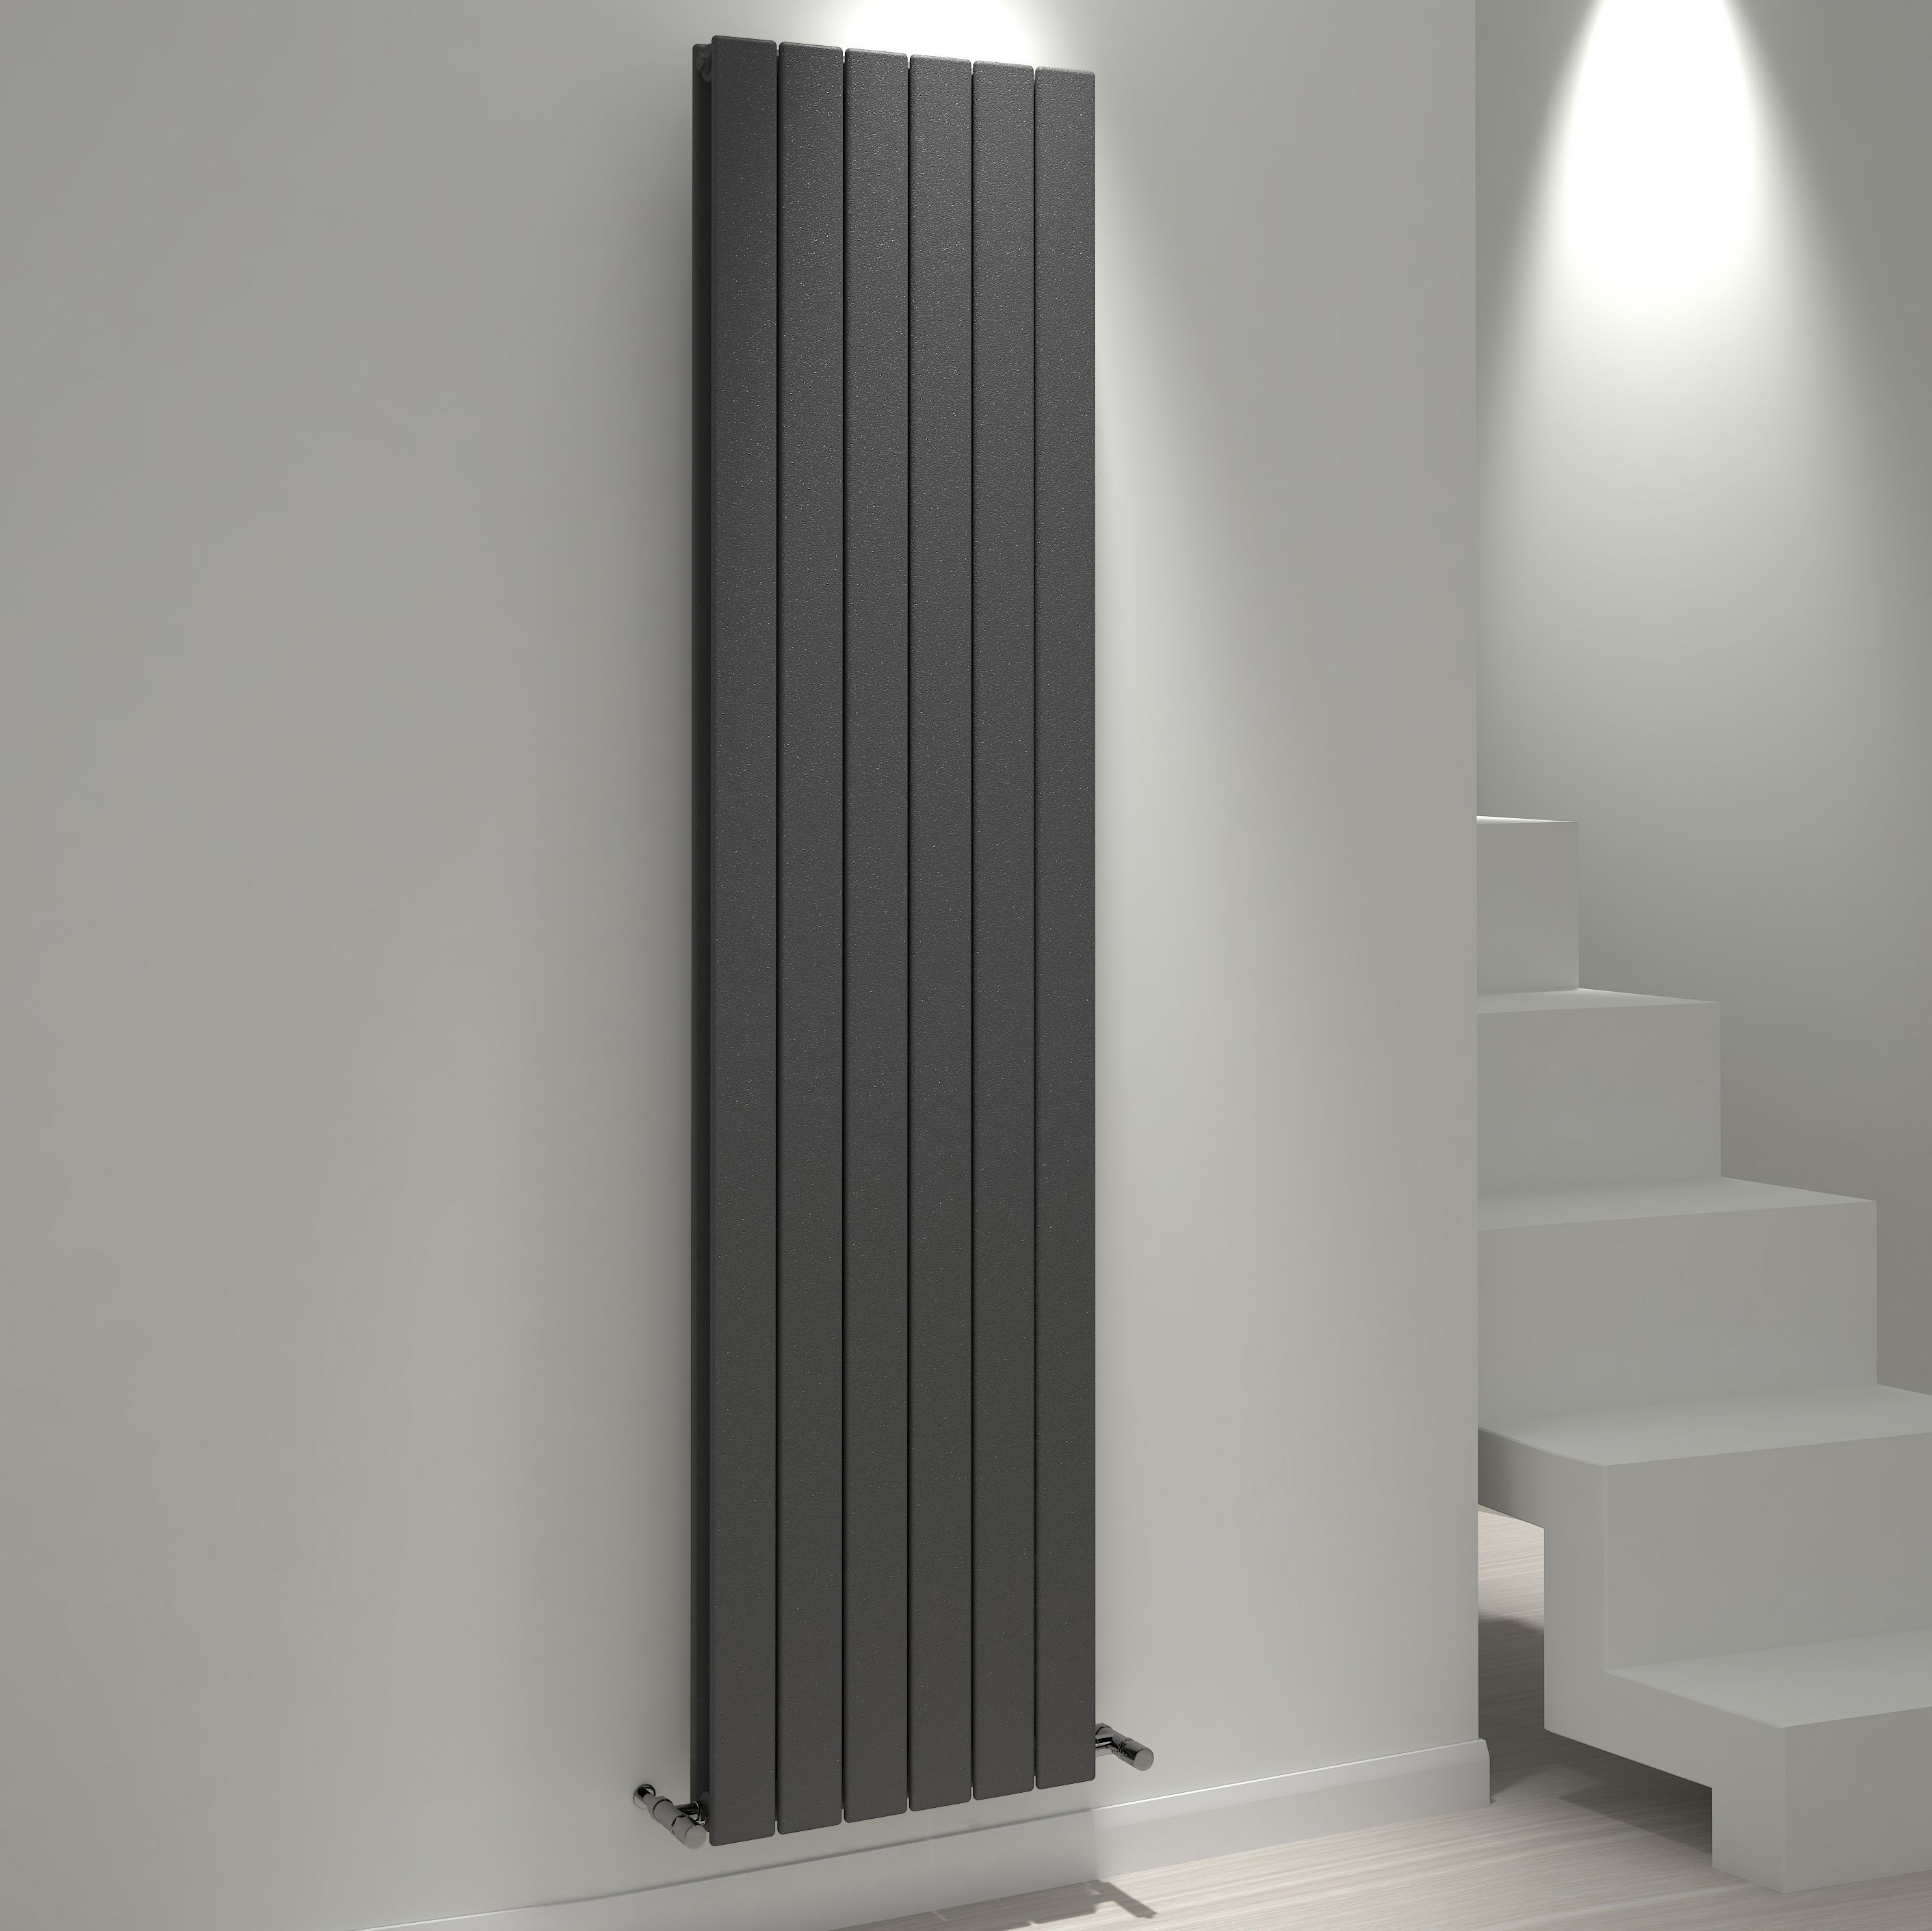 Kudox Tira Vertical Radiator Anthracite (h)1800 Mm (w)440 Mm